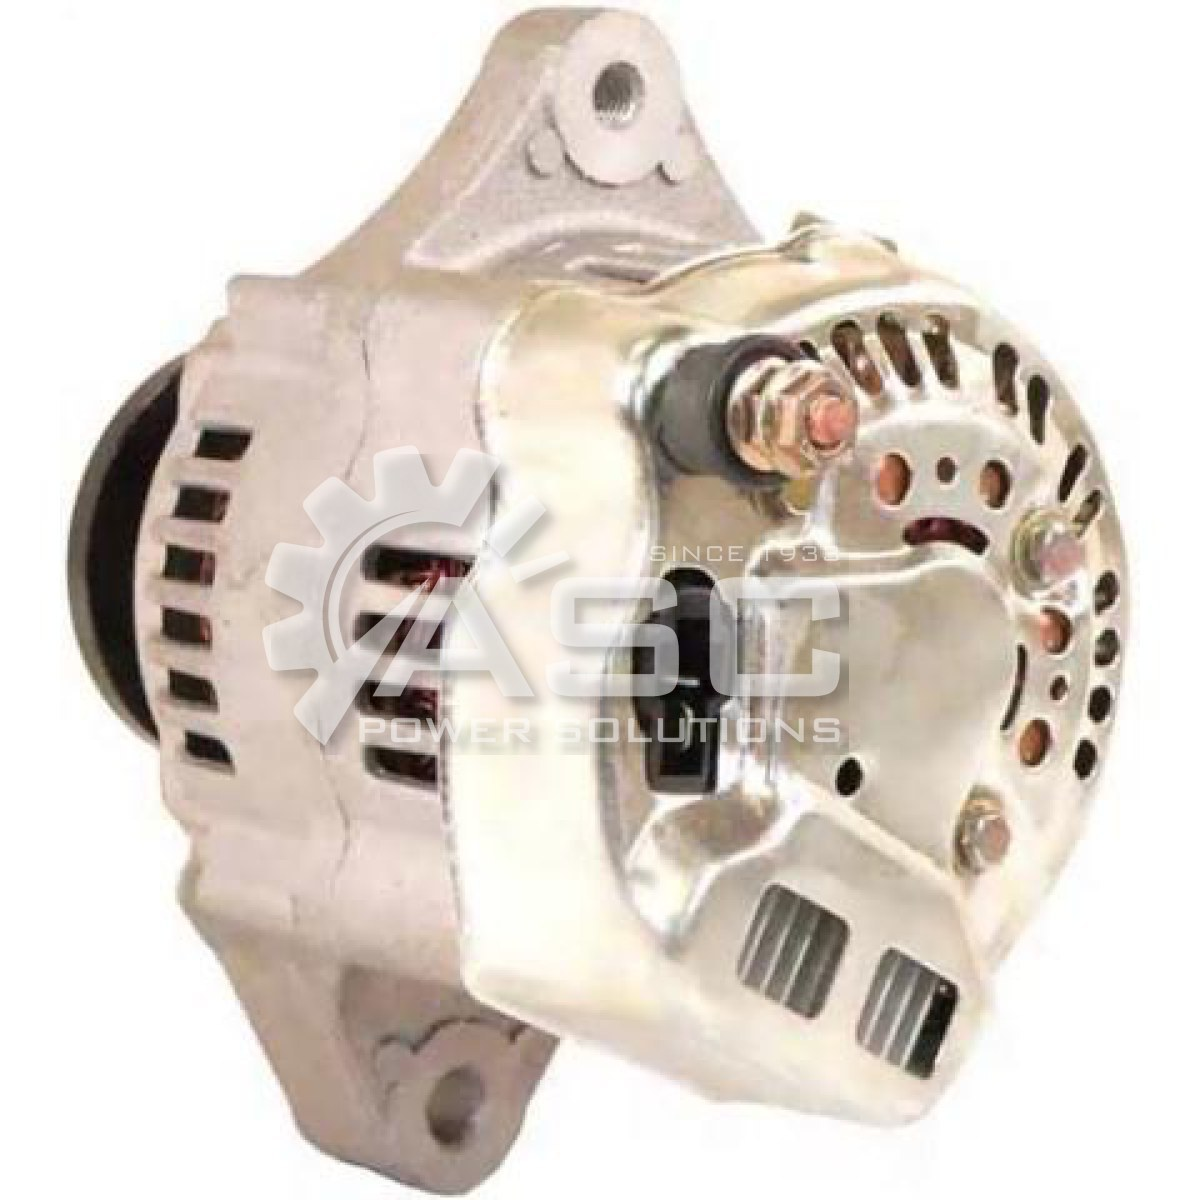 A521149_ASC, Alternator, 12V, 30 Amp, IR, IF, CW, 63MM, DENSO, Reman